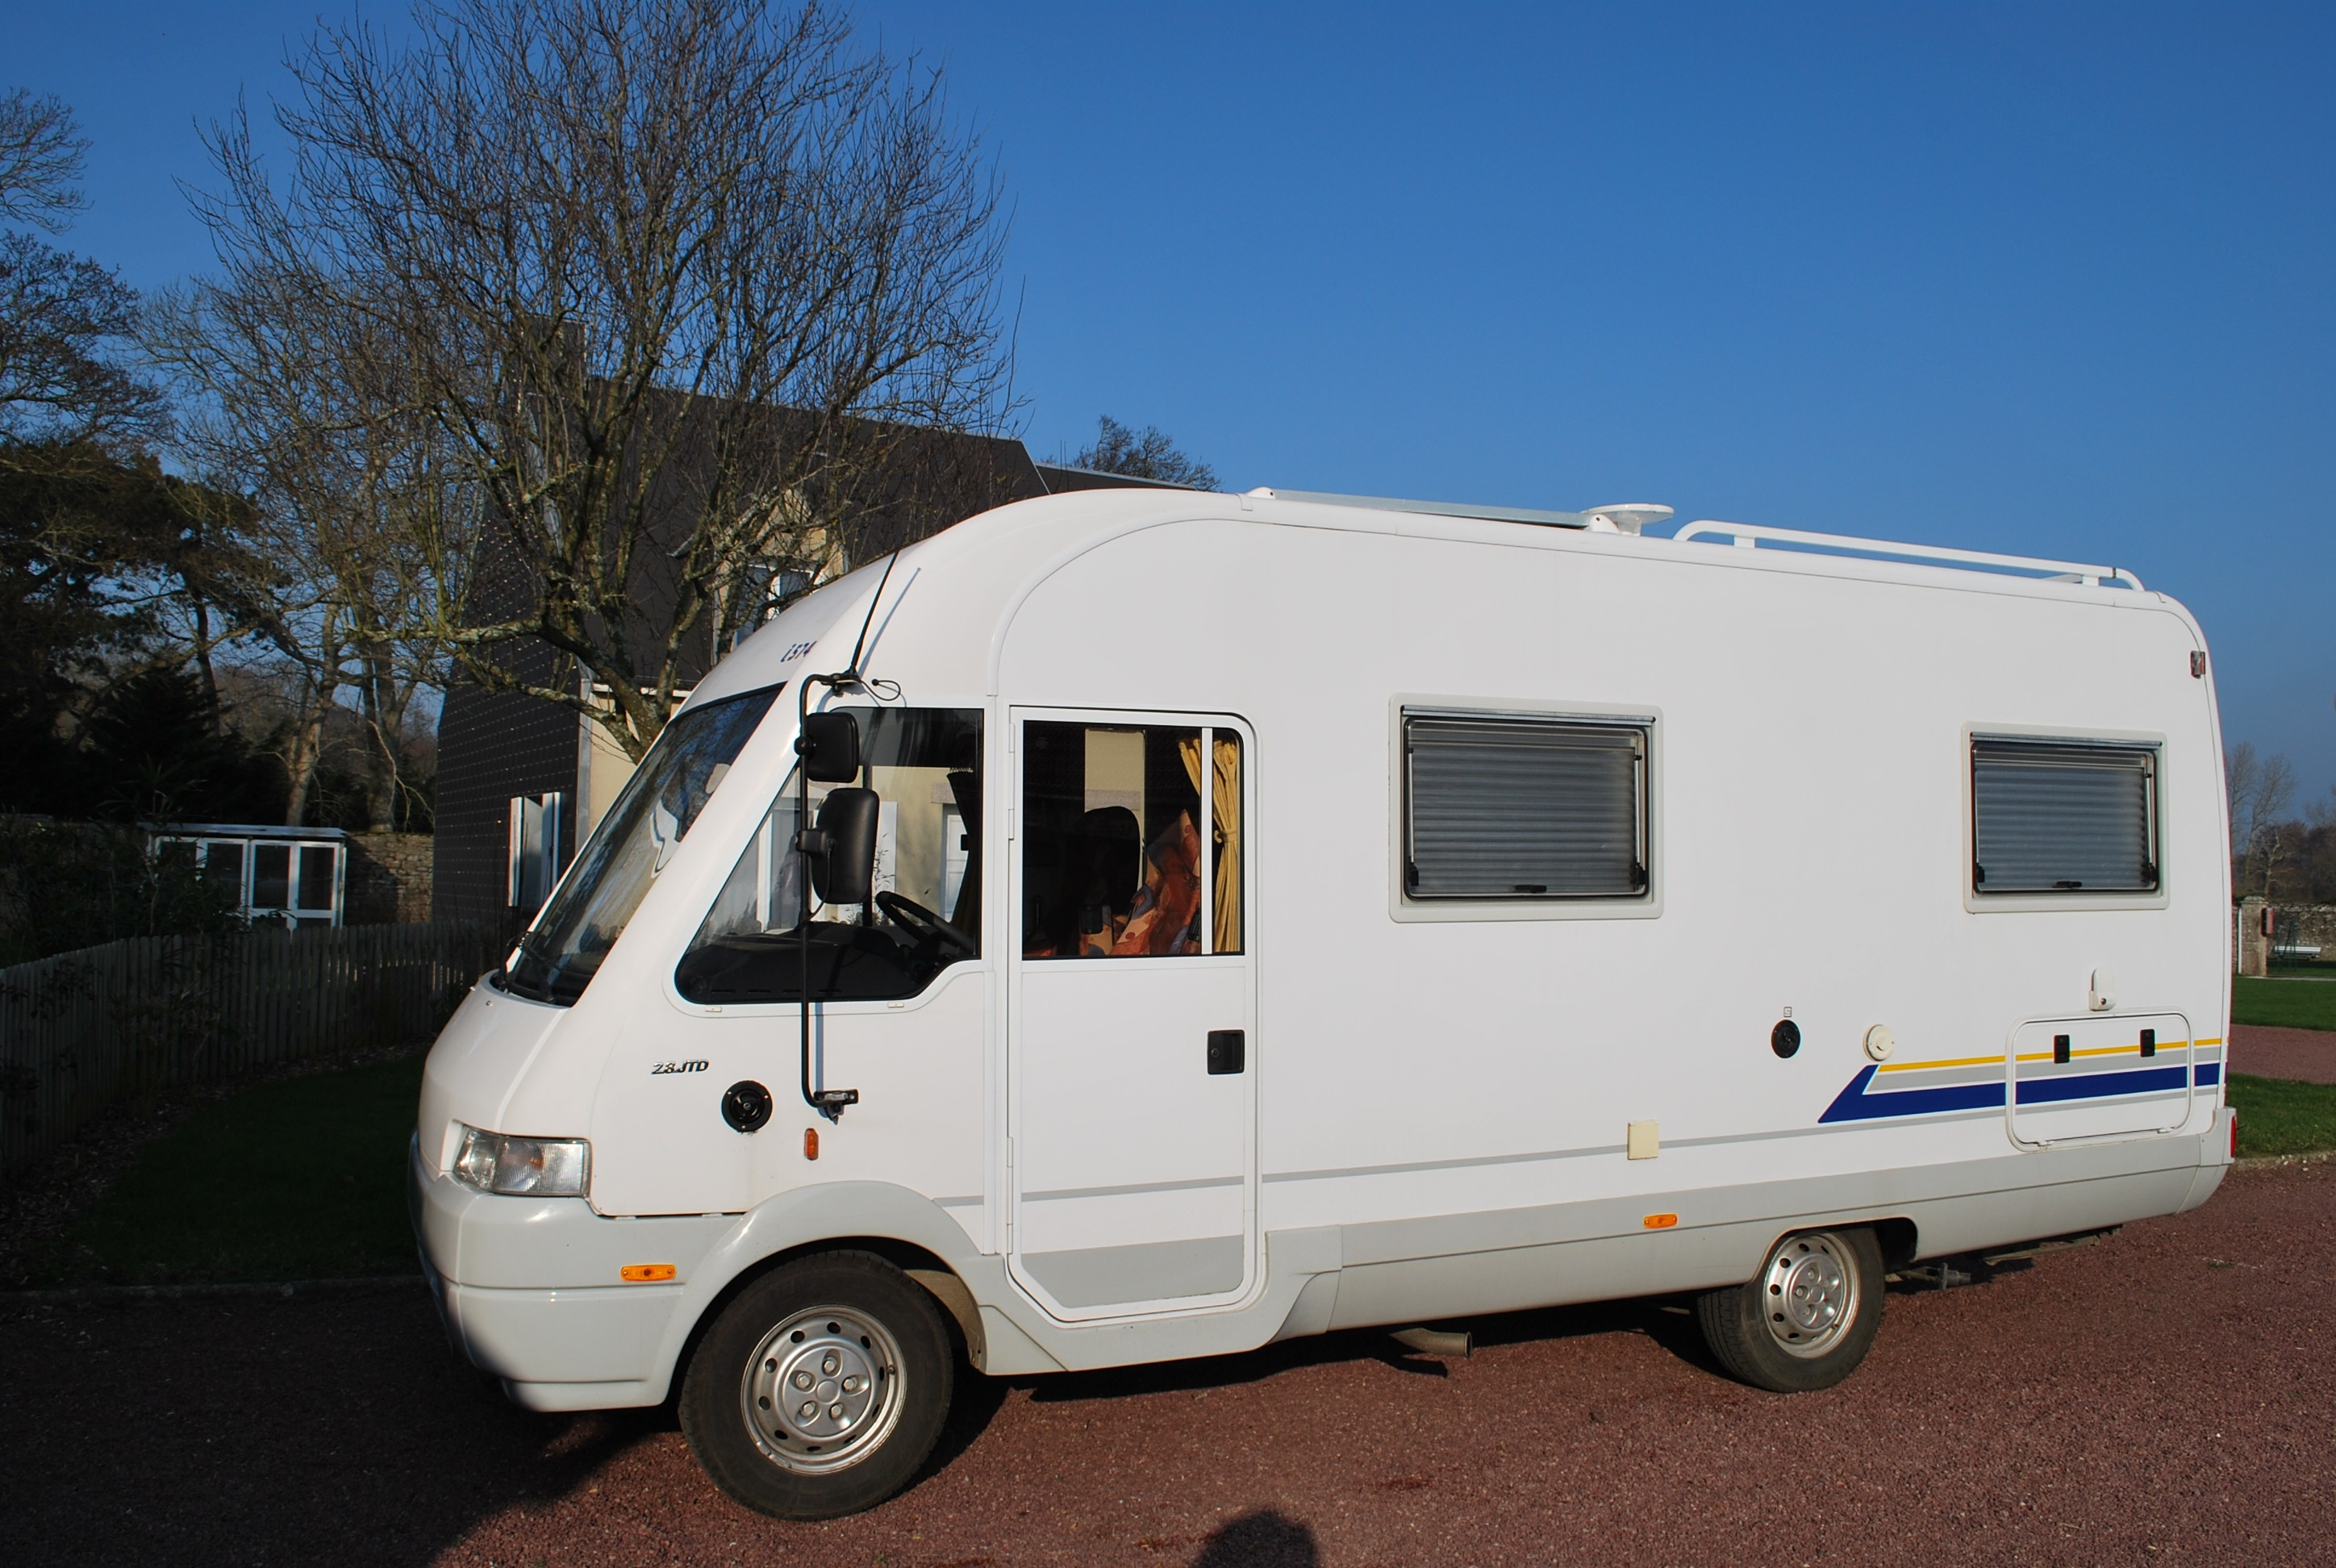 Cherche camping car occasion particulier